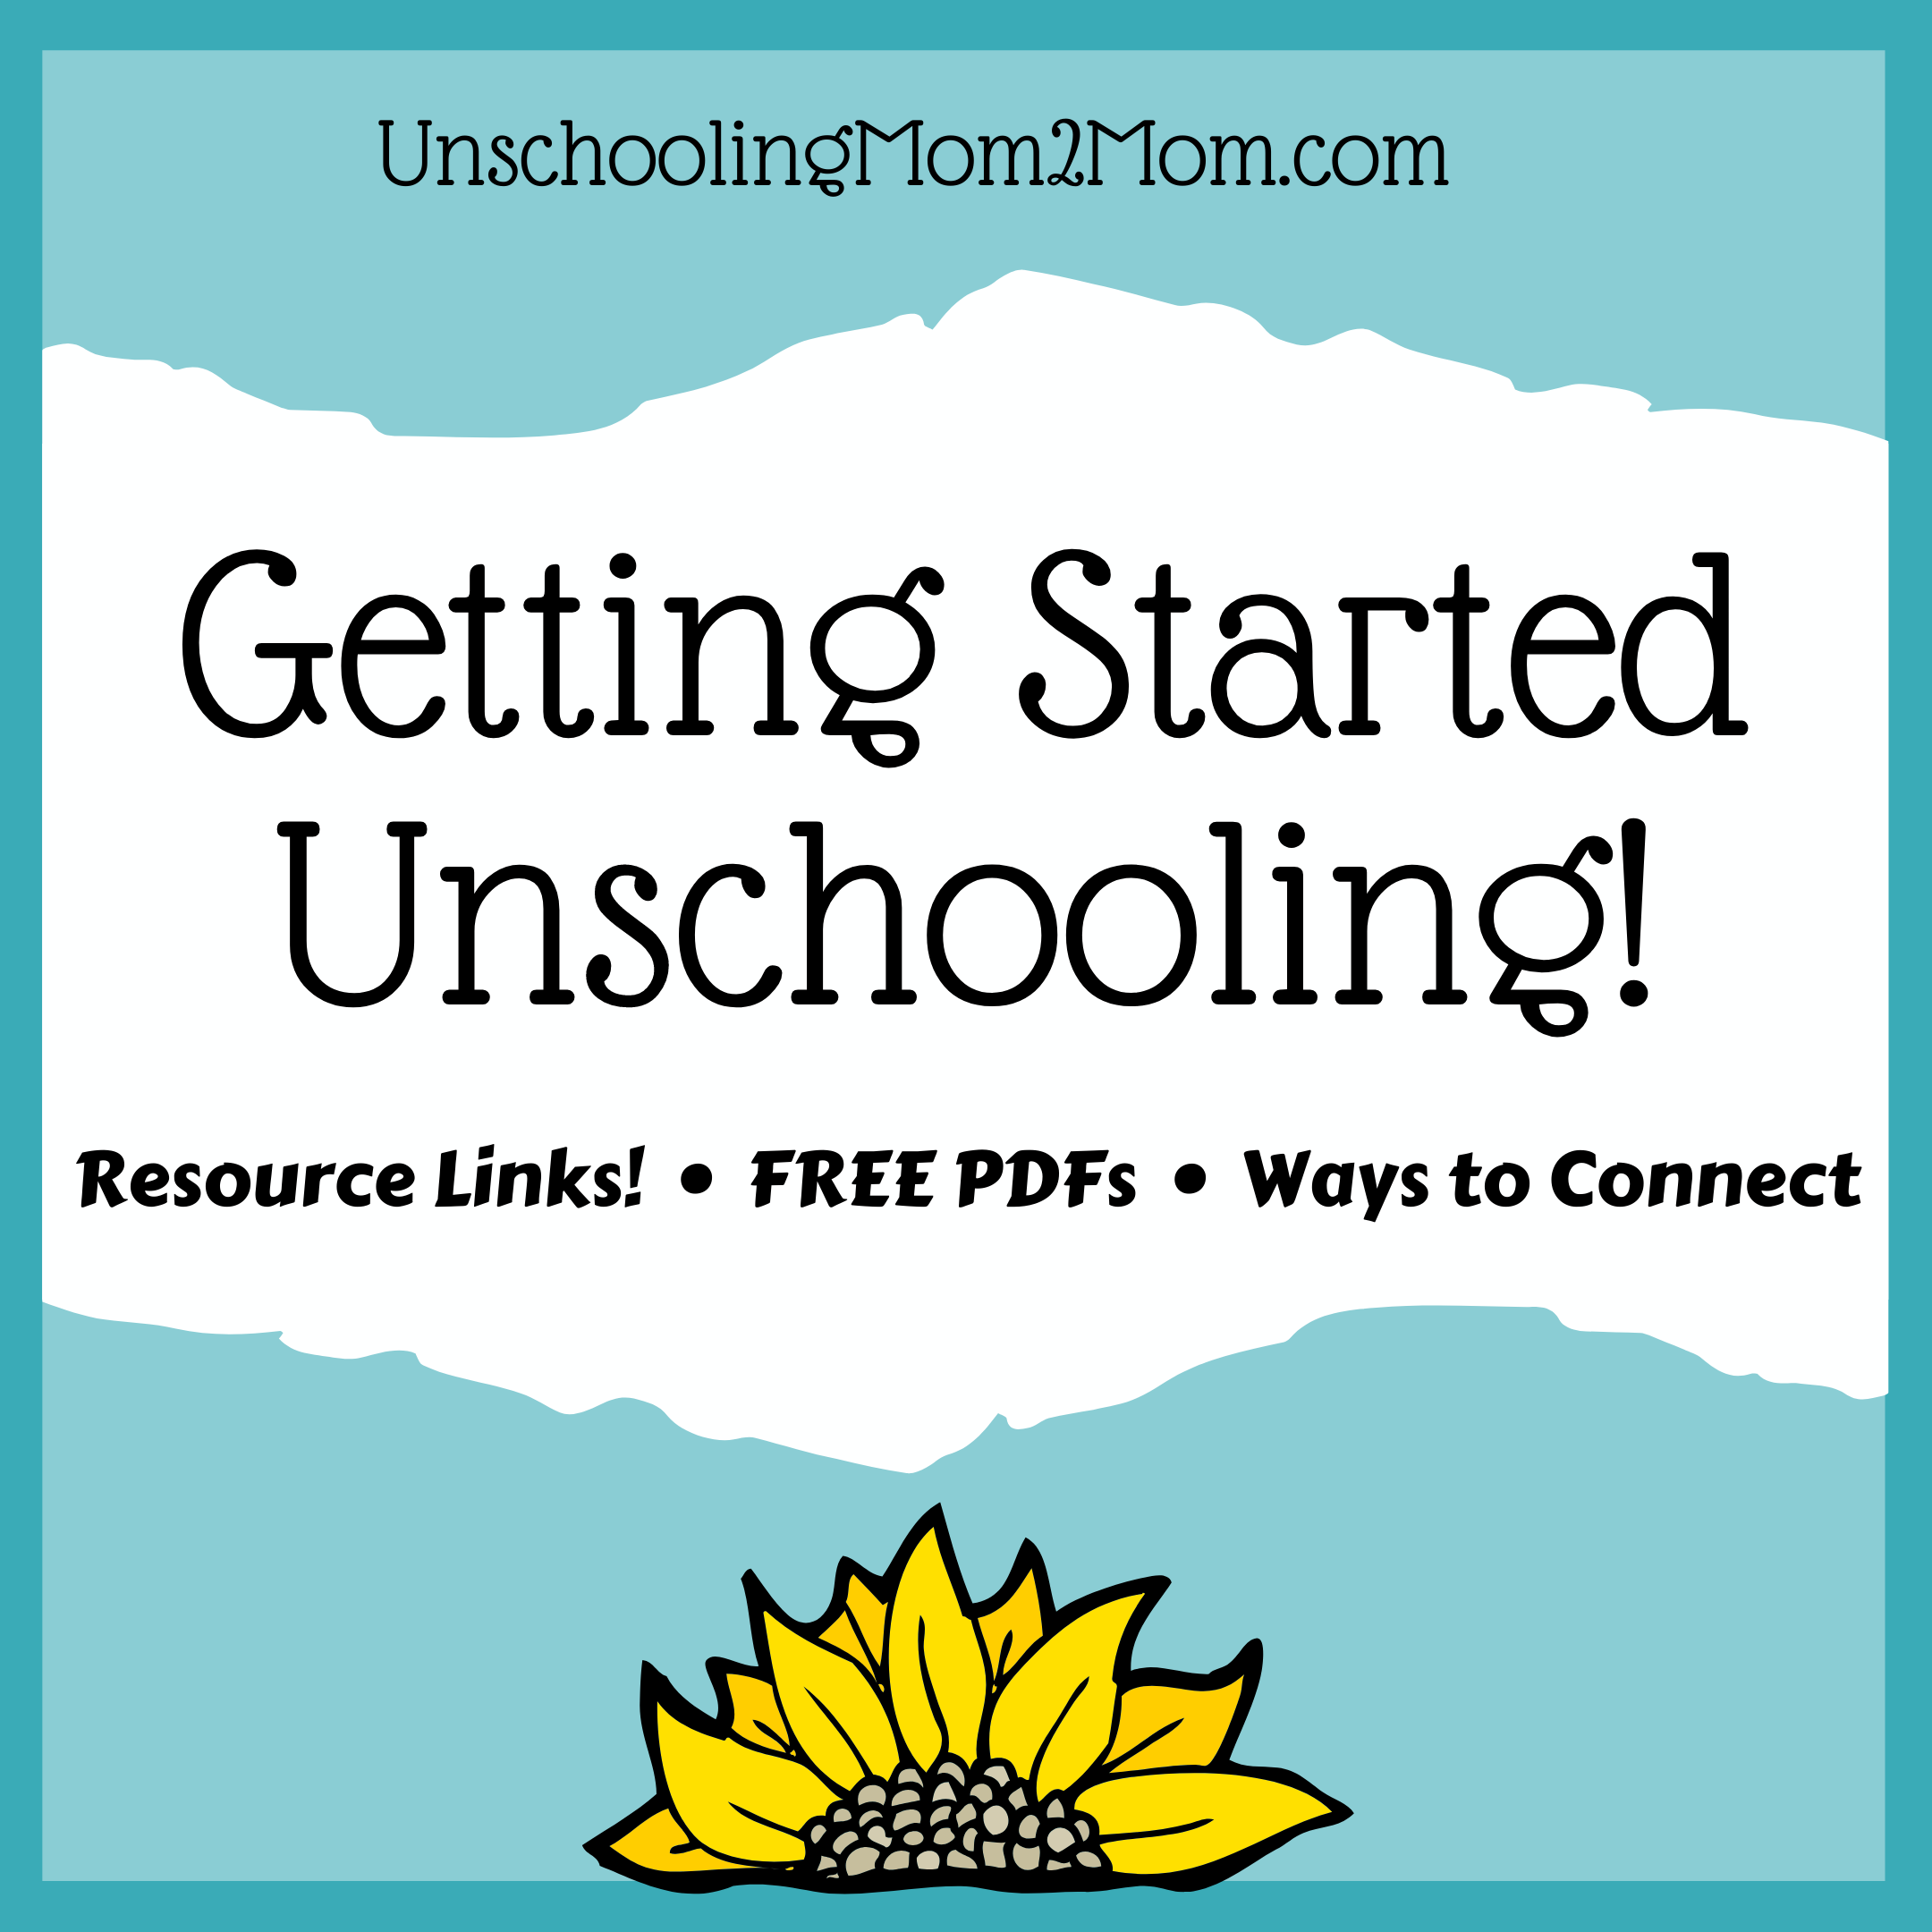 Getting Started Unschooling